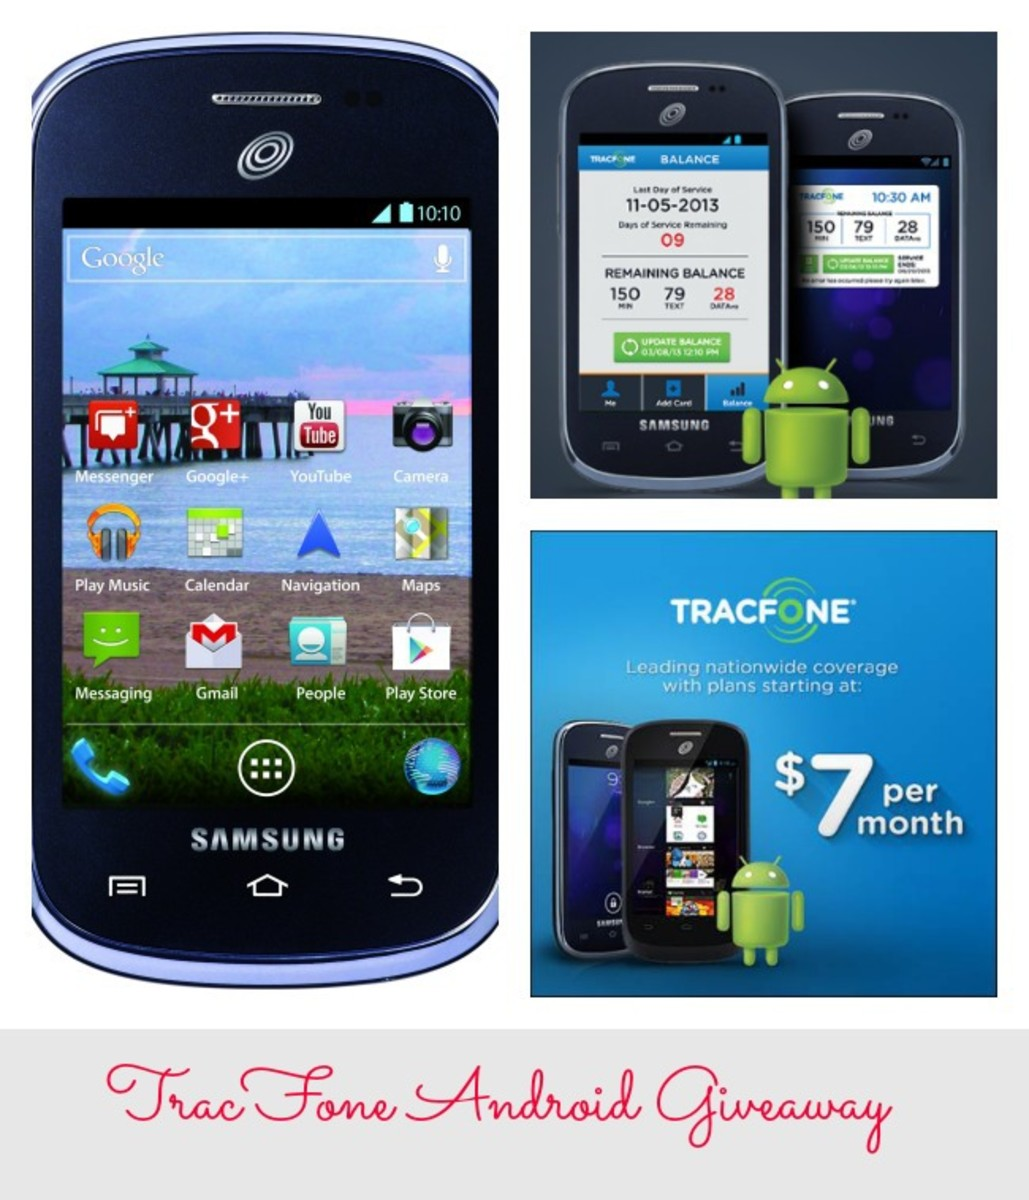 TracFone-Android-Giveaway-